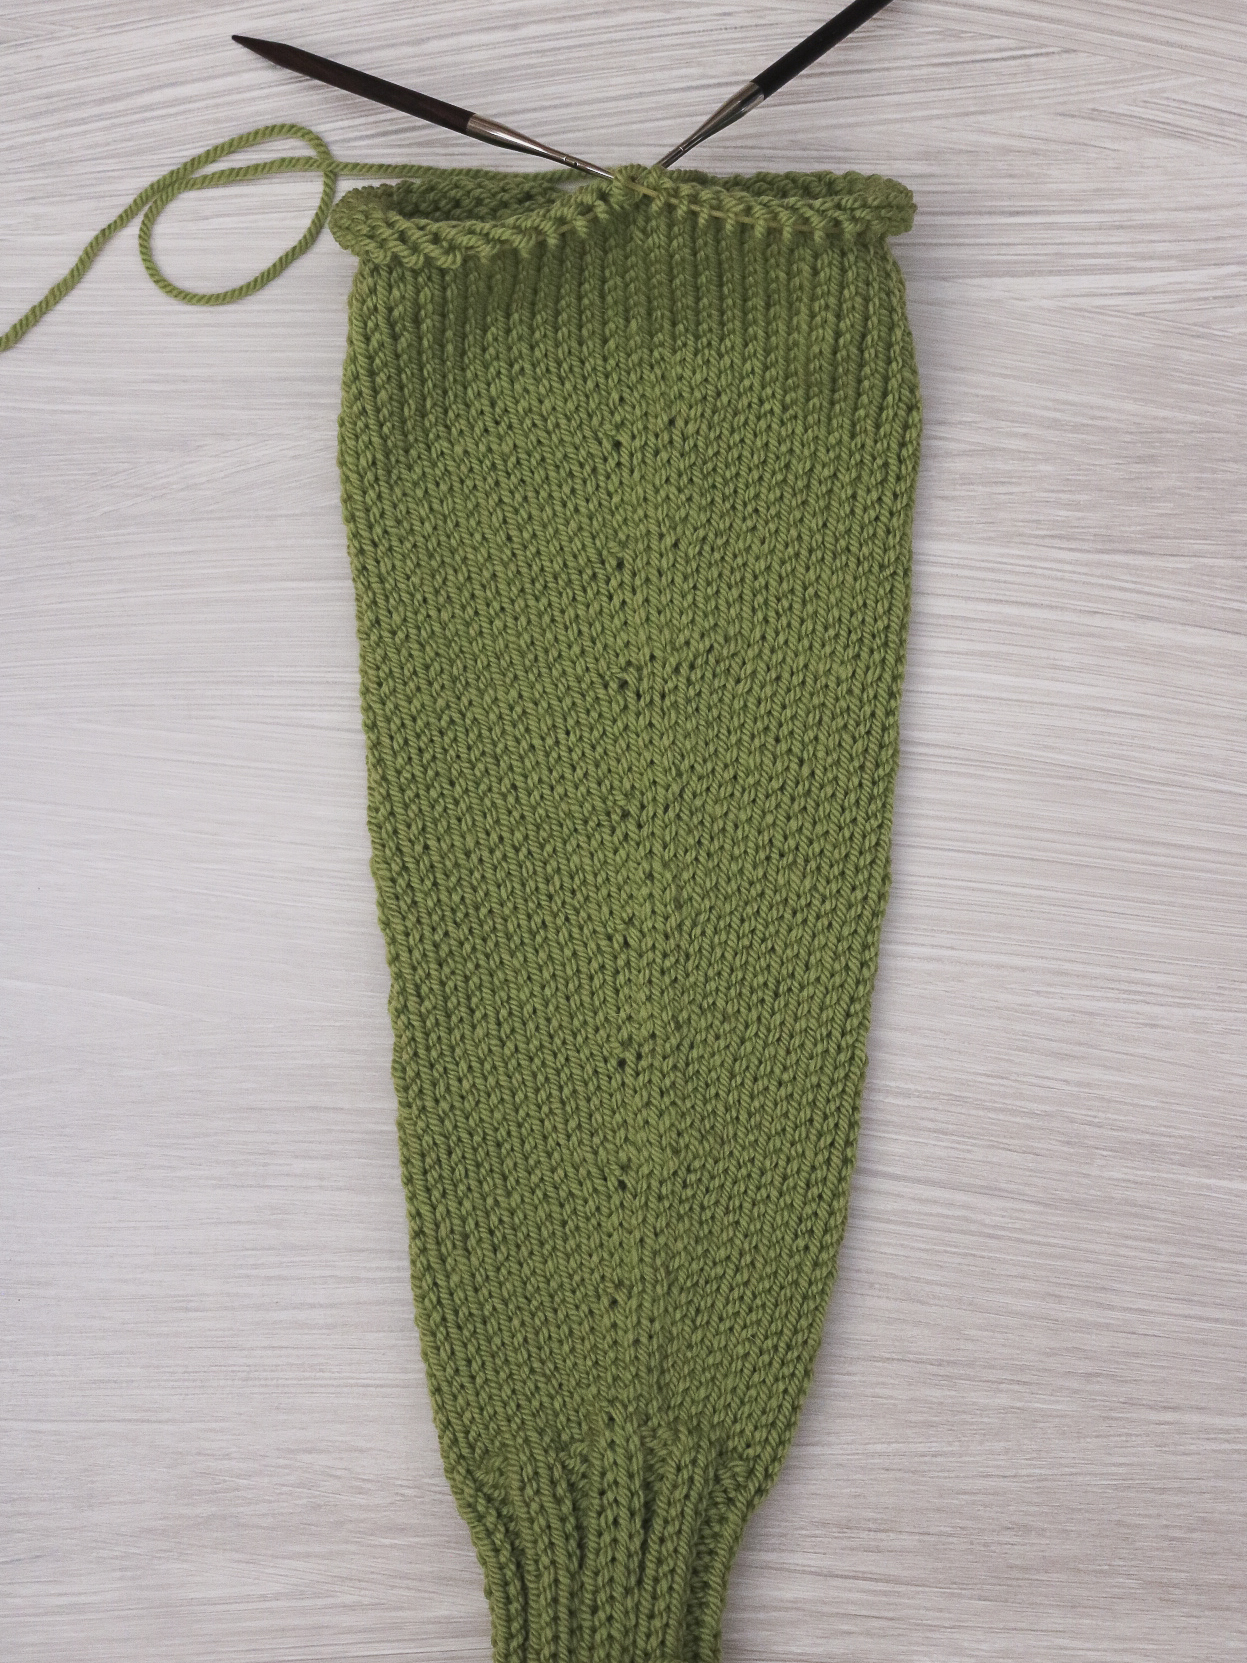 M1L and M1R increases on a knitted sleeve